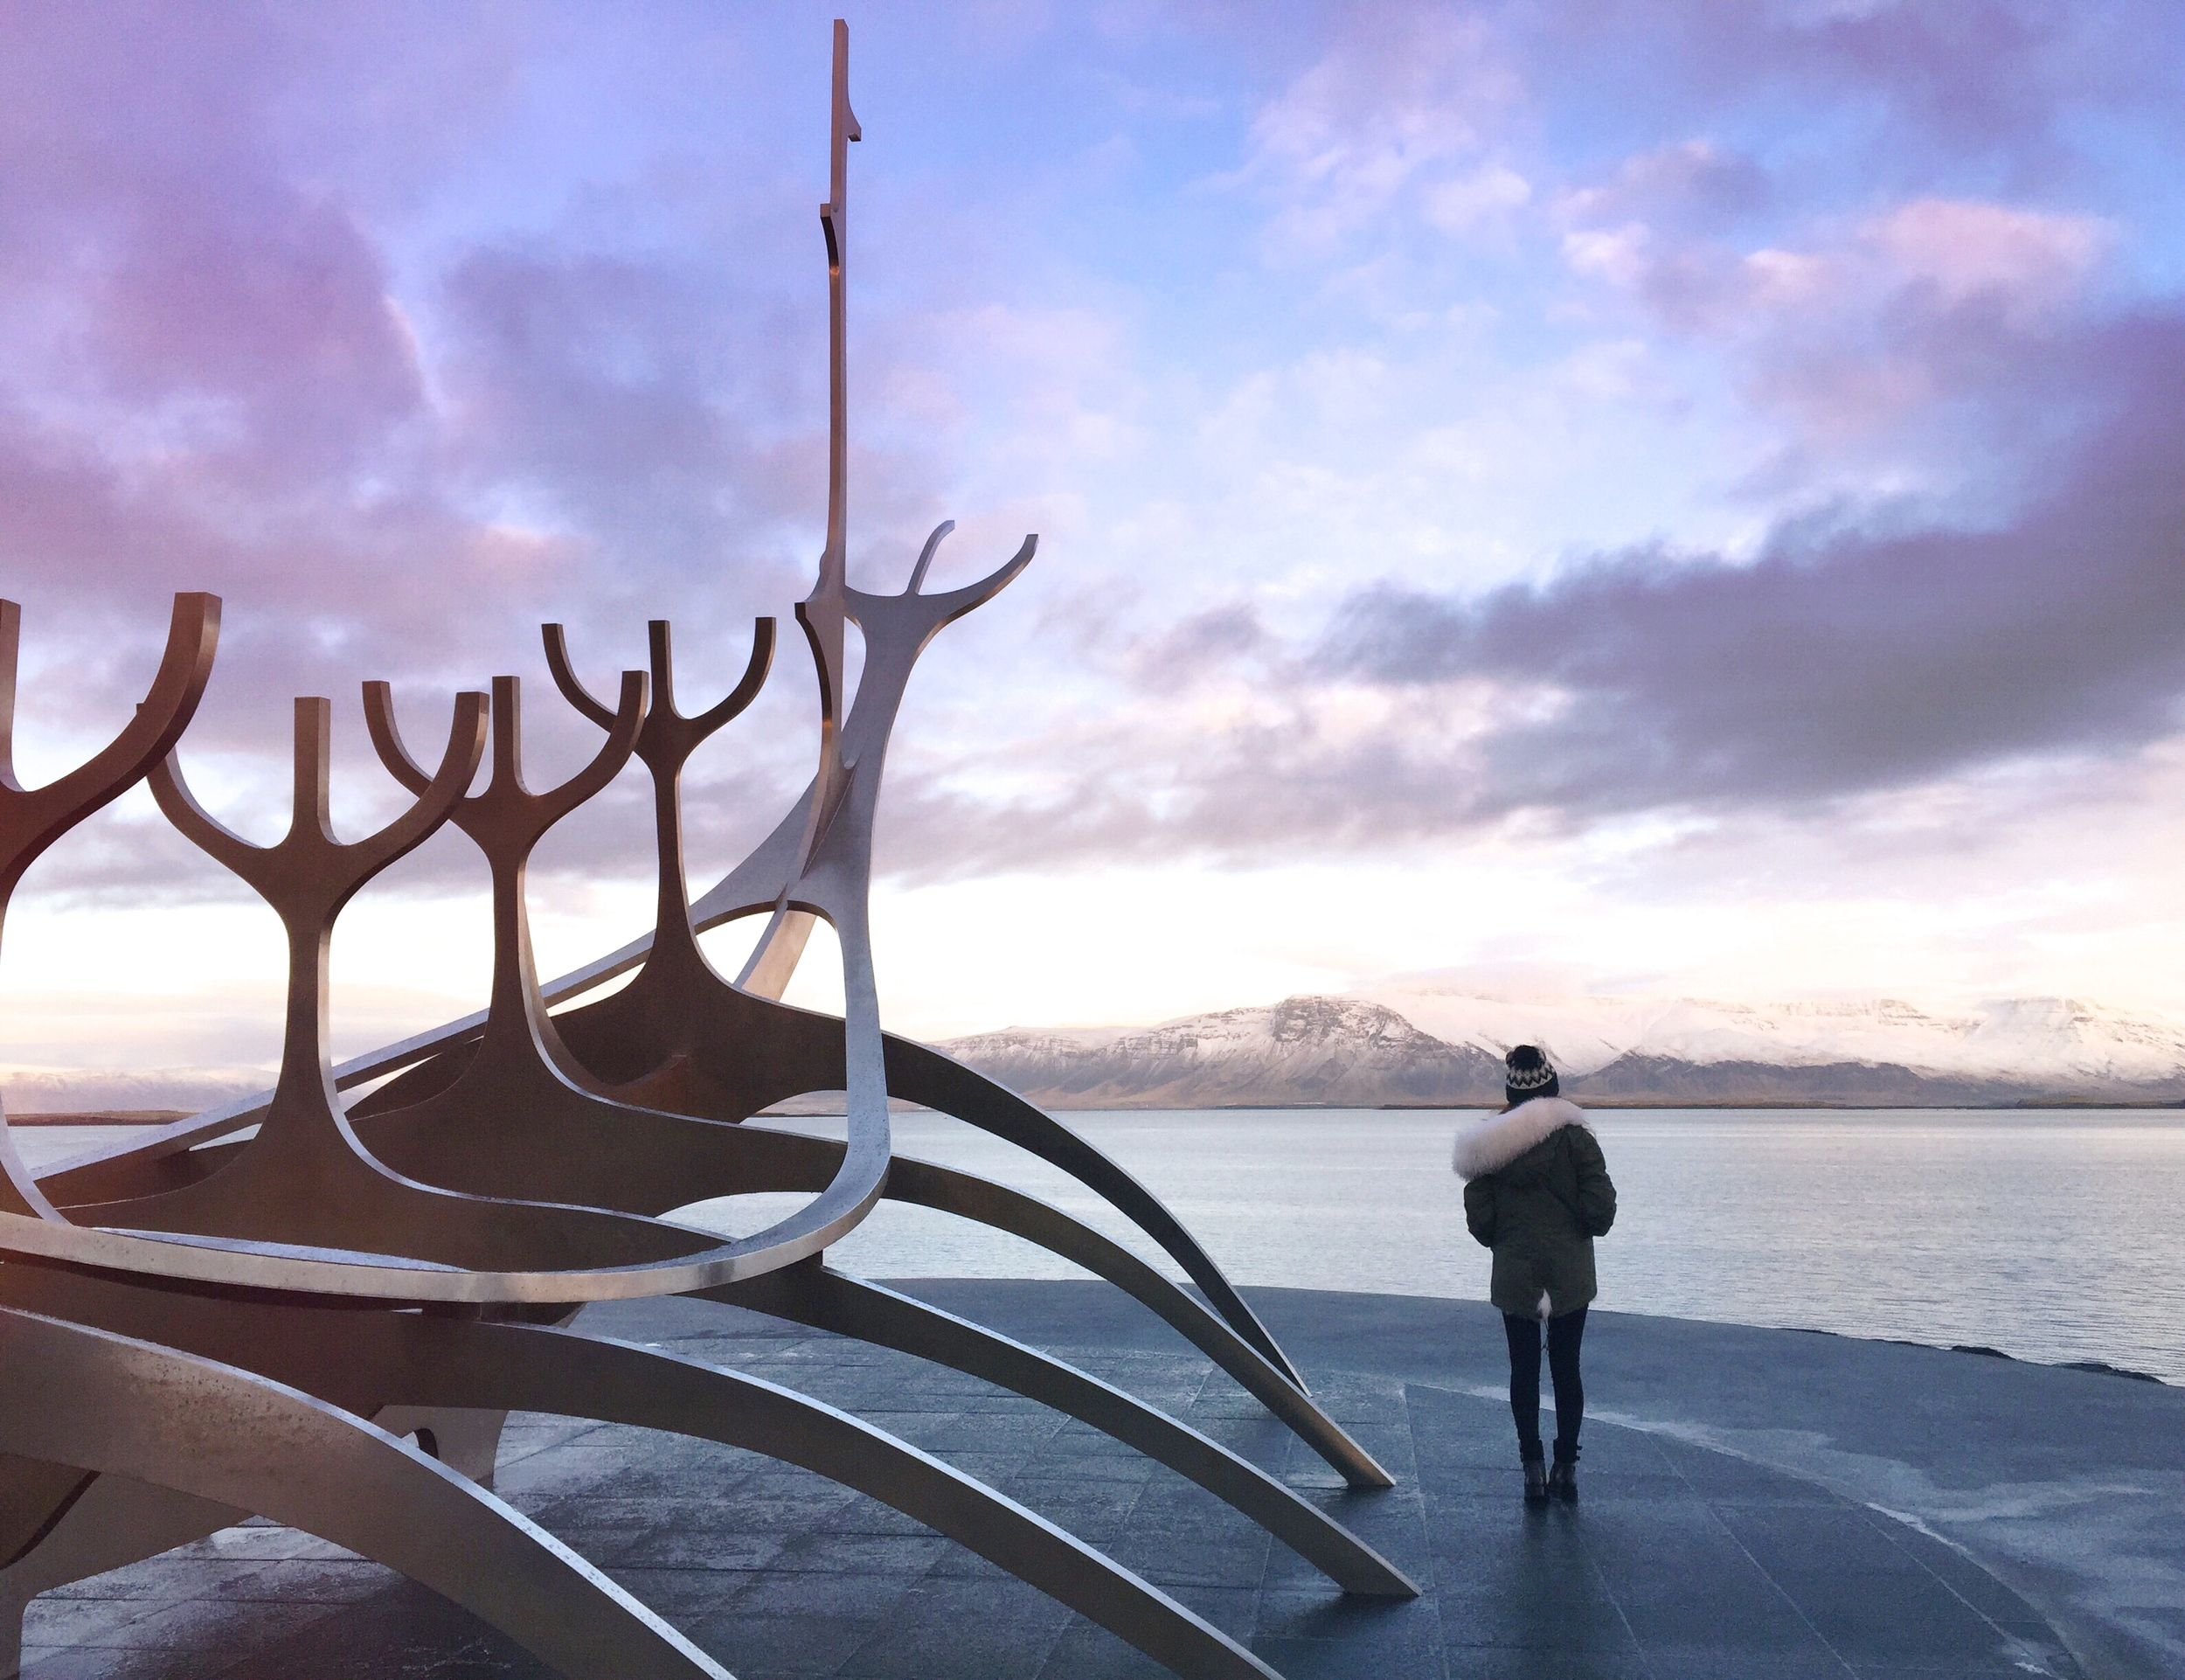 """It's a boat of dreams, an ode to the sun."" @Sólfar - Sun Voyager."